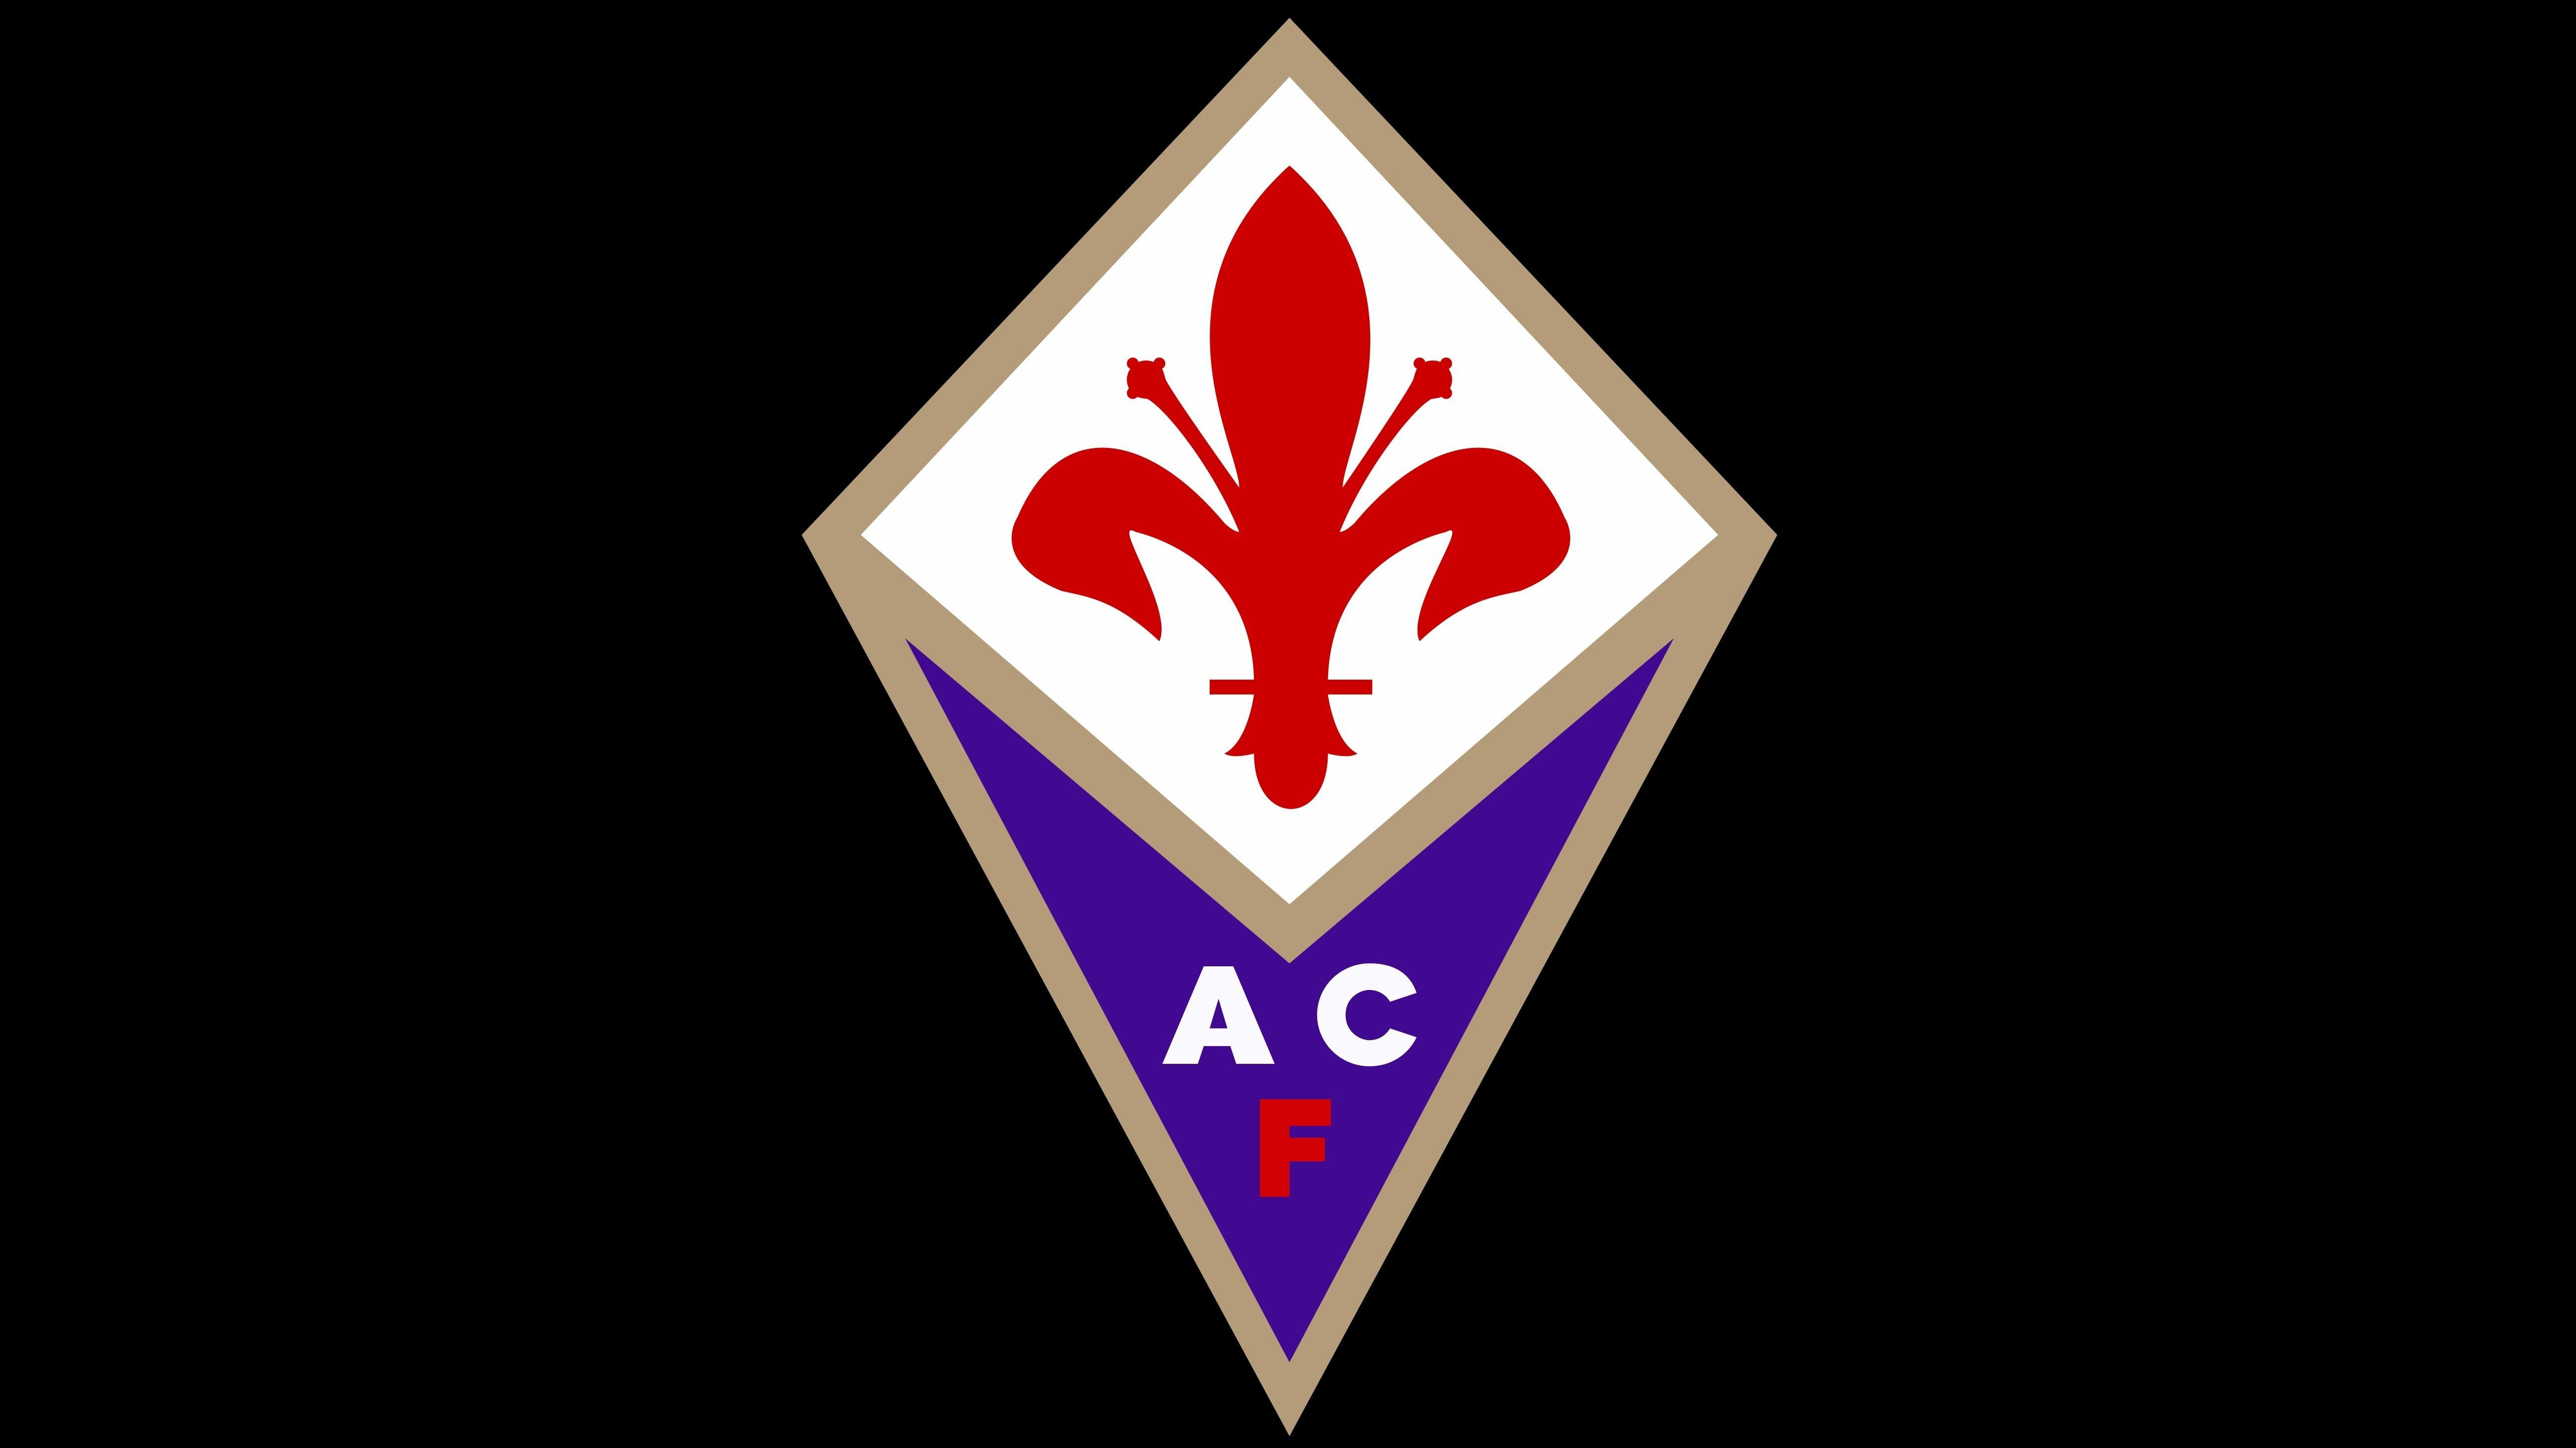 1 ACF Fiorentina Wallpapers HD